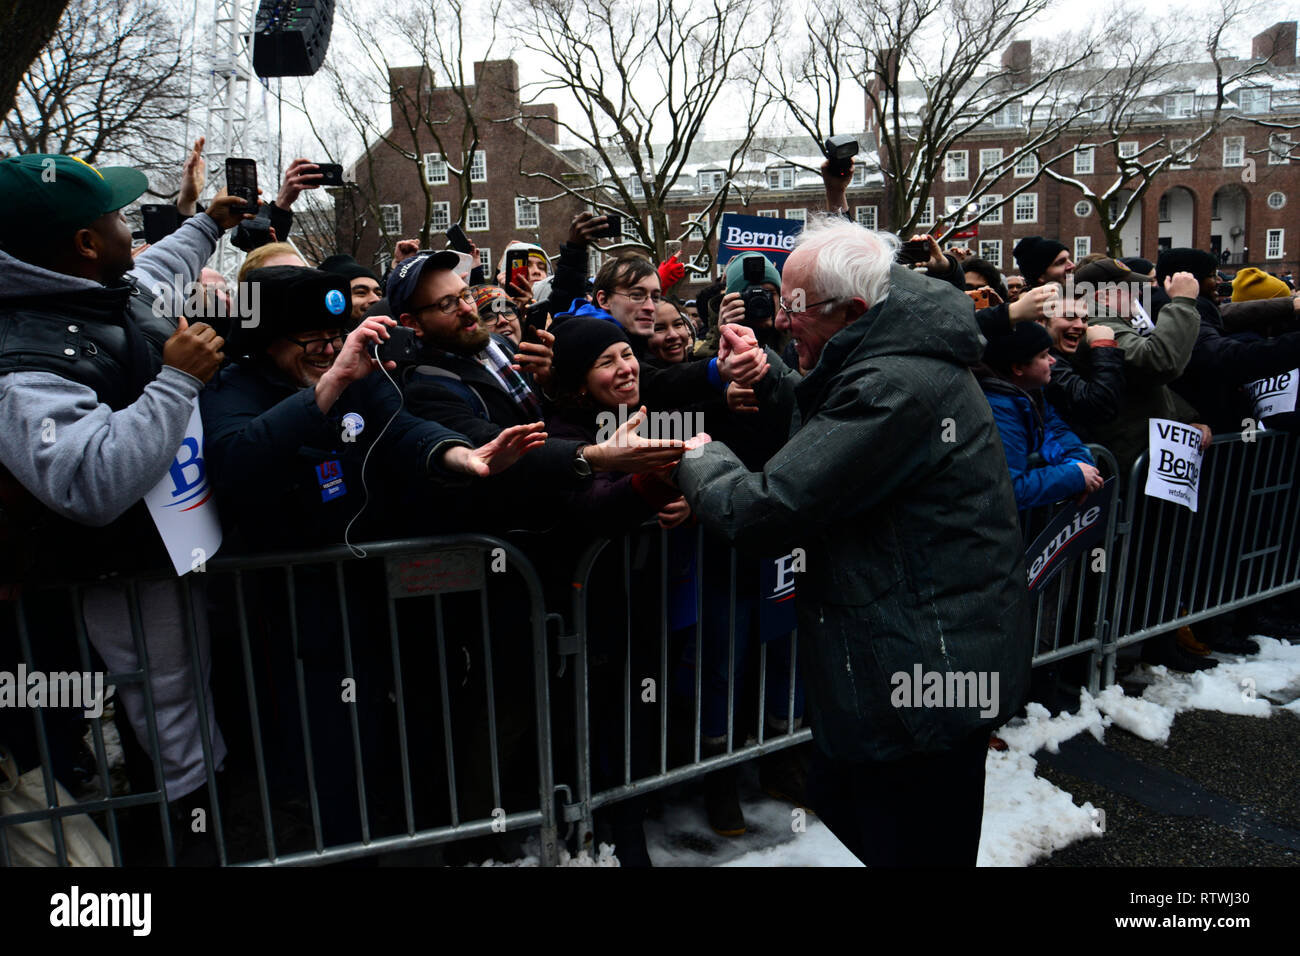 New York, NY, USA. 2nd March, 2019. Bernie Sanders (I-VT) greets supporters as he kicks-off his campaign for the 2020 U.S. Presidential Elections on a Democratic ticket at a rally at Brooklyn College, in Brooklyn, NY on March 2, 2019. Credit: OOgImages/Alamy Live News - Stock Image